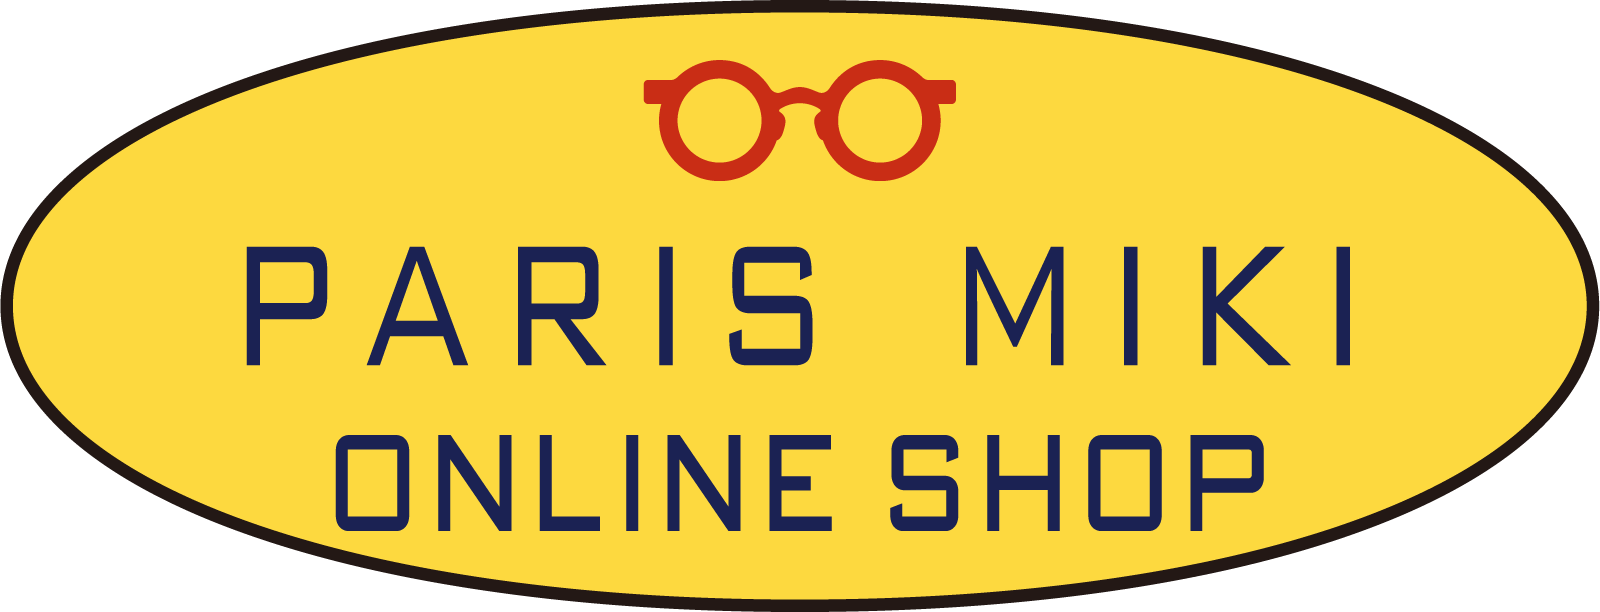 PARIS MIKI ONLINESHOP